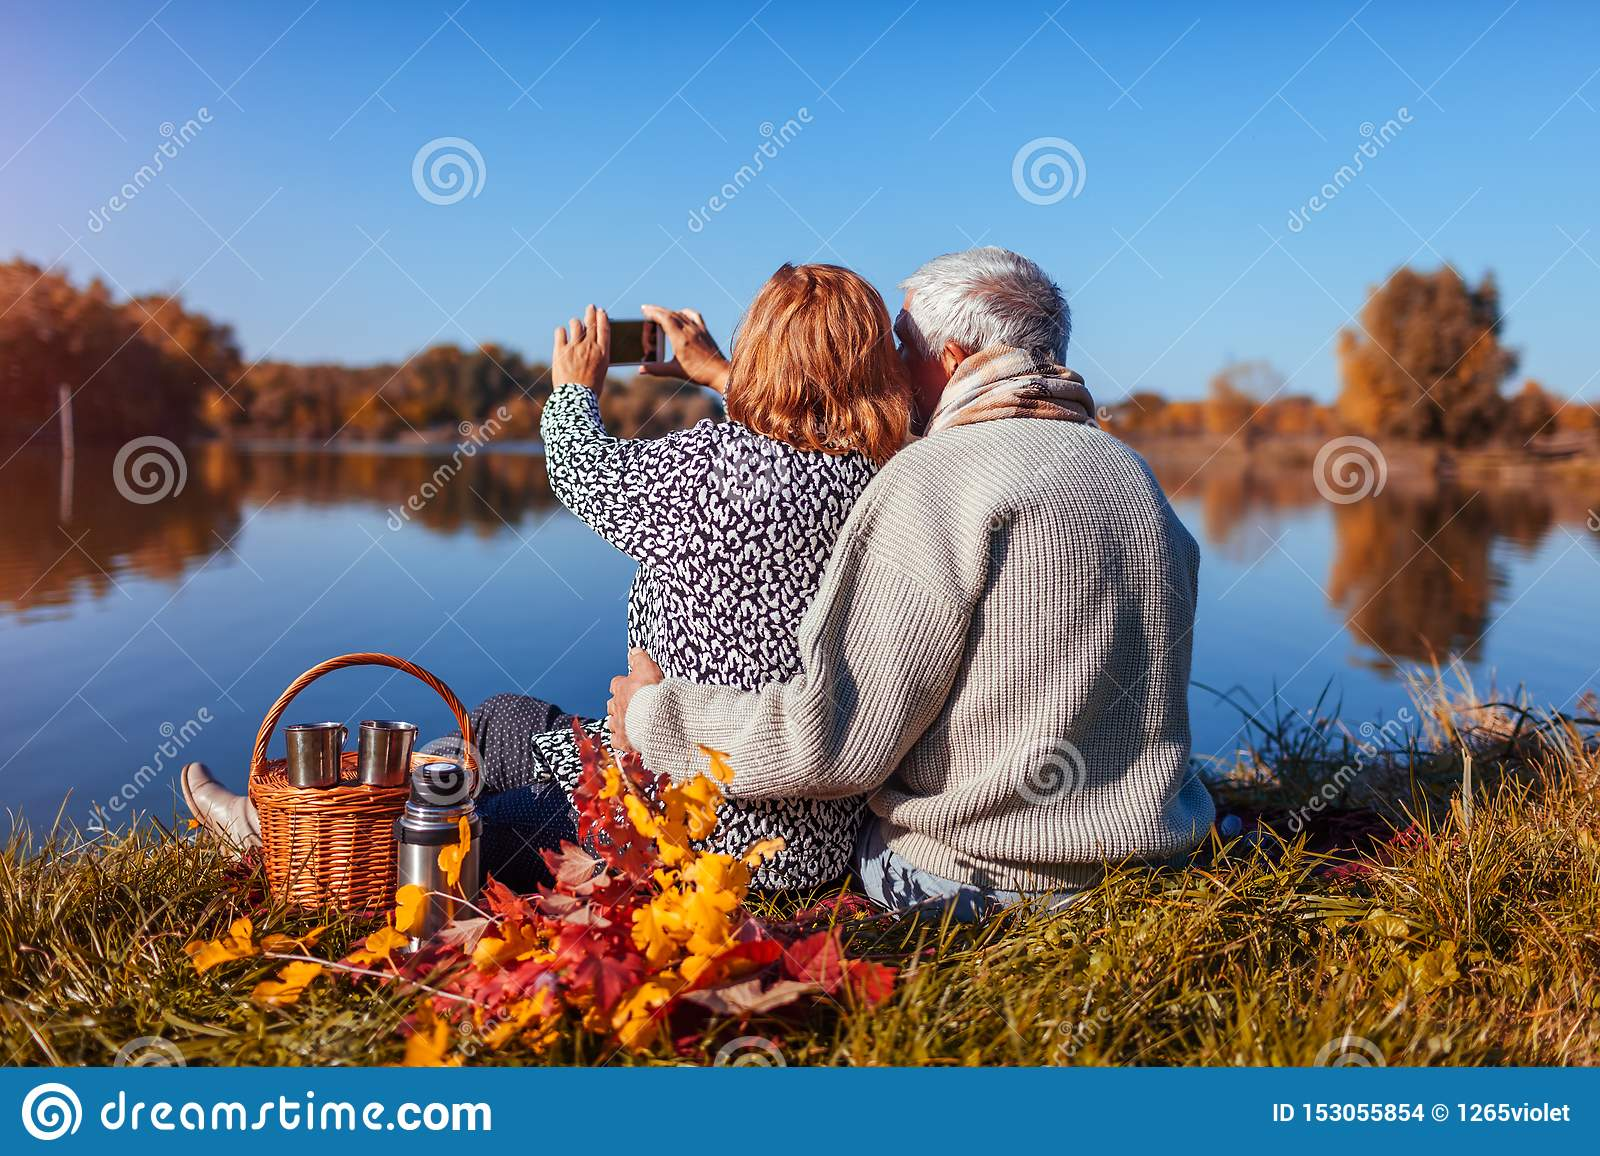 Senior couple taking selfie while having picnic by autumn lake. Happy man and woman enjoying nature and hugging